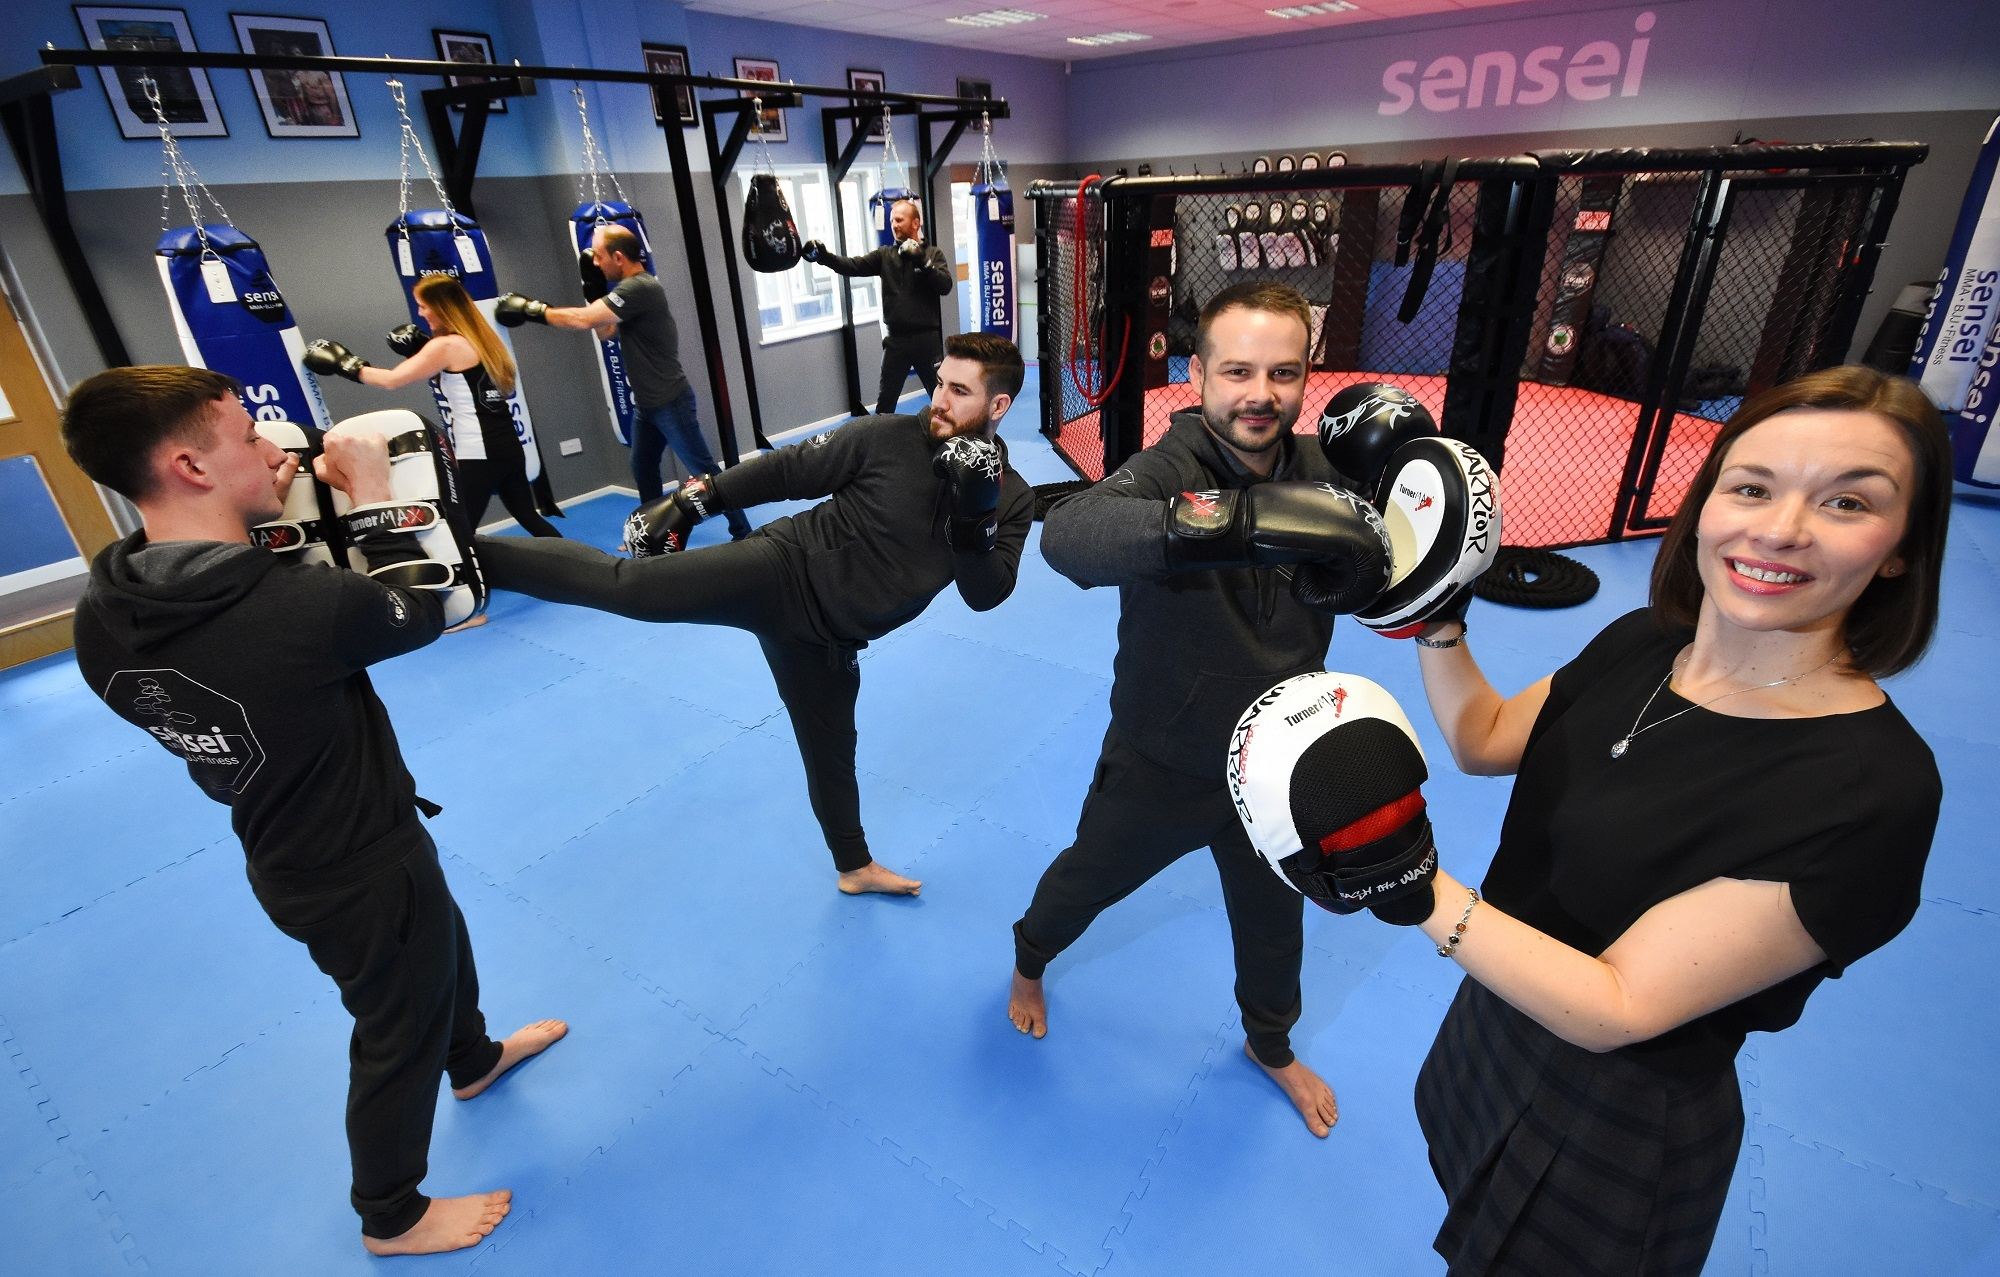 MARTIAL ARTS: Owner Rick Boyle, centre, with TEDCO business advisor, Judith Wheatley, working out in the new martial arts centre